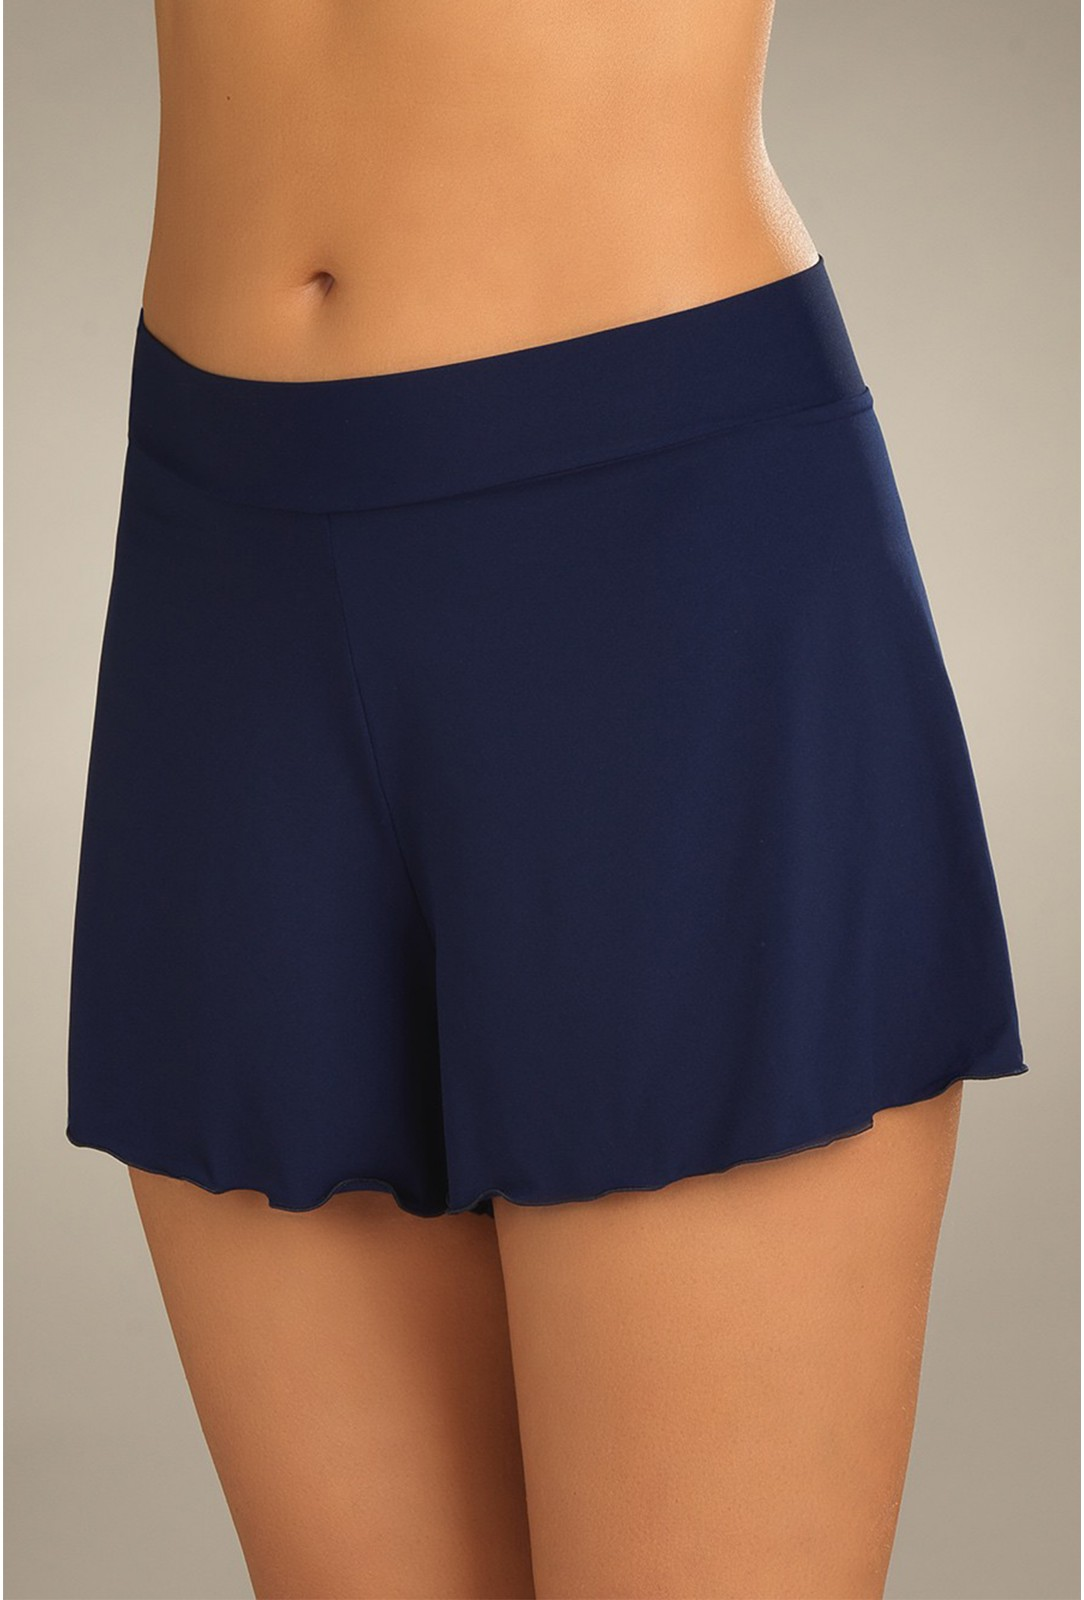 Beach Short PAIN DE SUCRE, Navy - Shawn